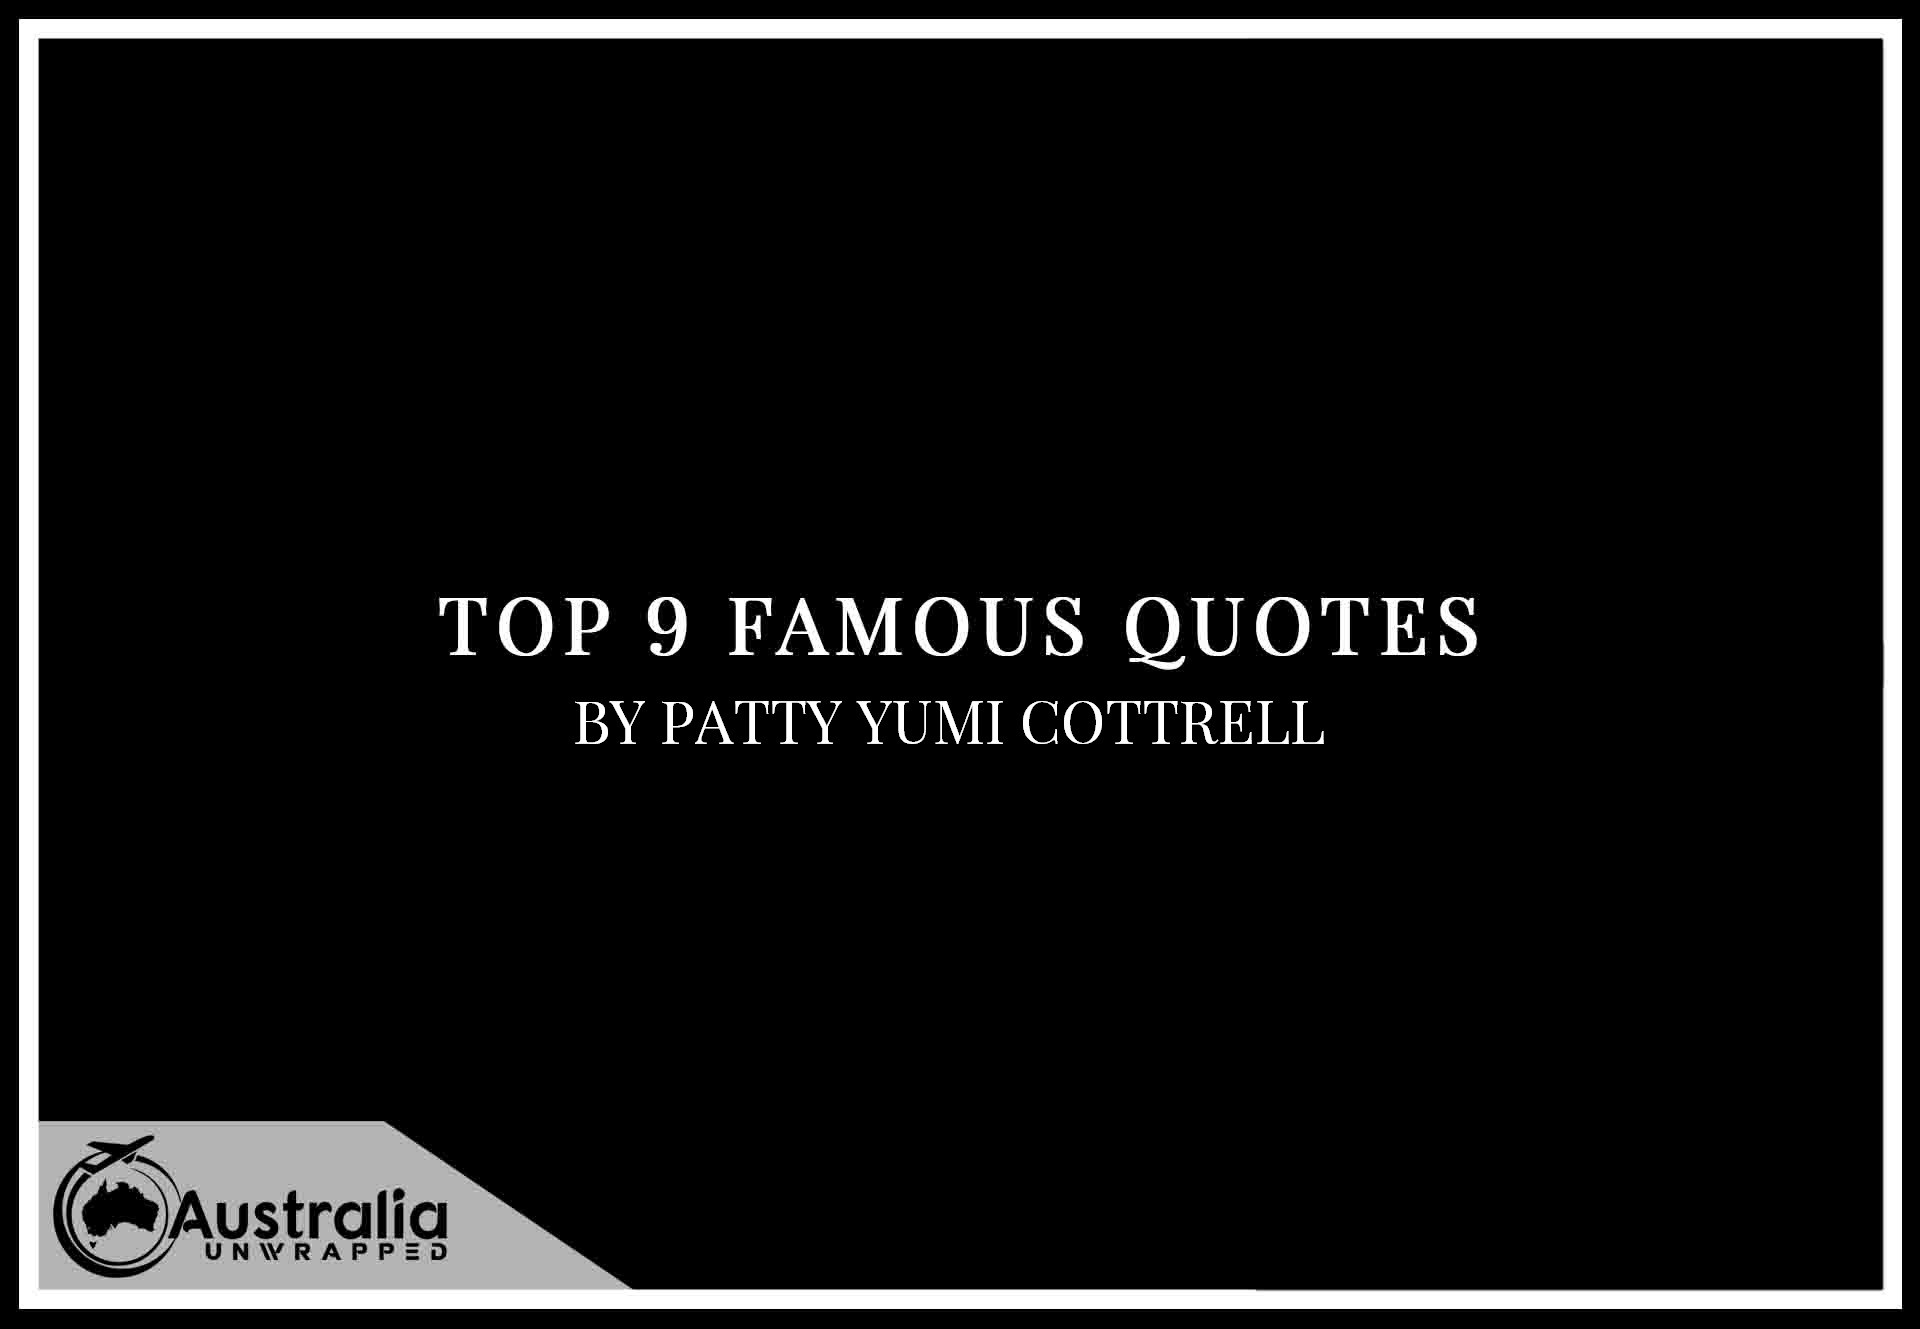 Top 9 Famous Quotes by Author Patty Yumi Cottrell